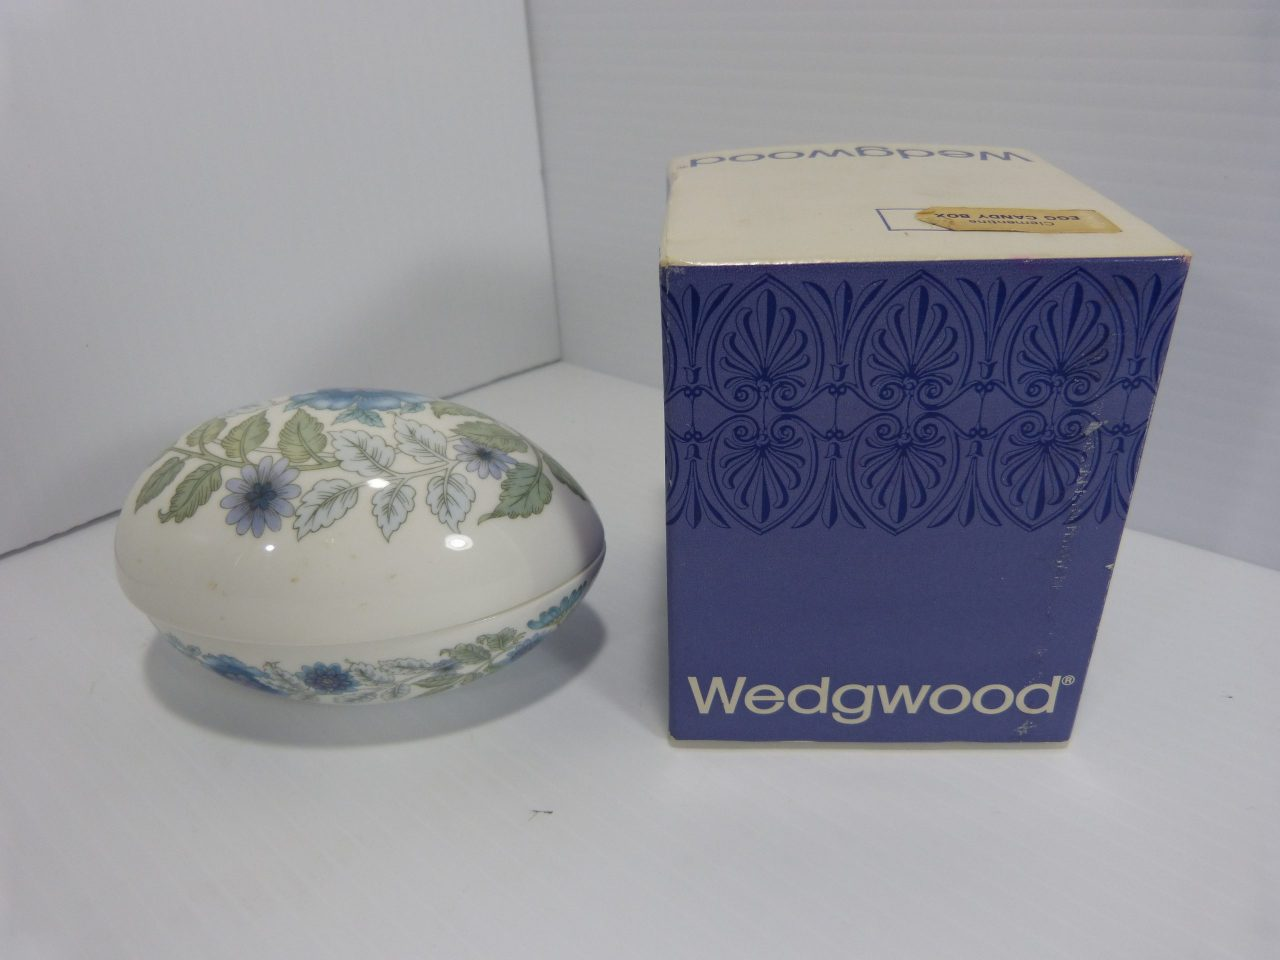 Wedgwood Clementine Egg Shaped Candy/Trinket Box